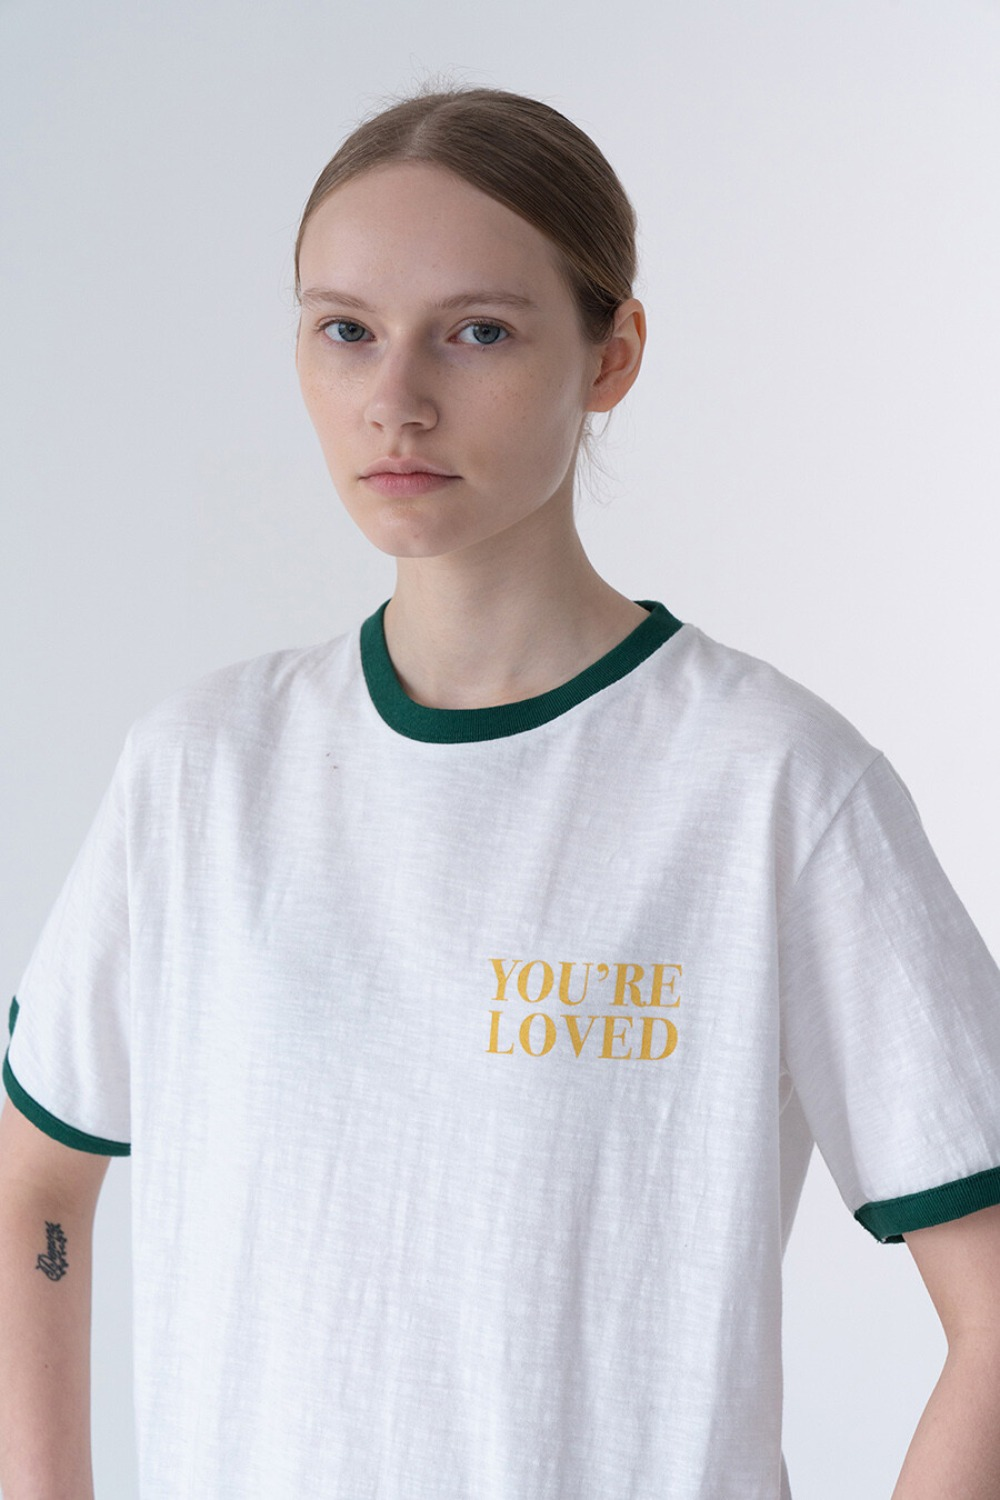 LOVED T-SHIRT WHITE + GREEN RIB